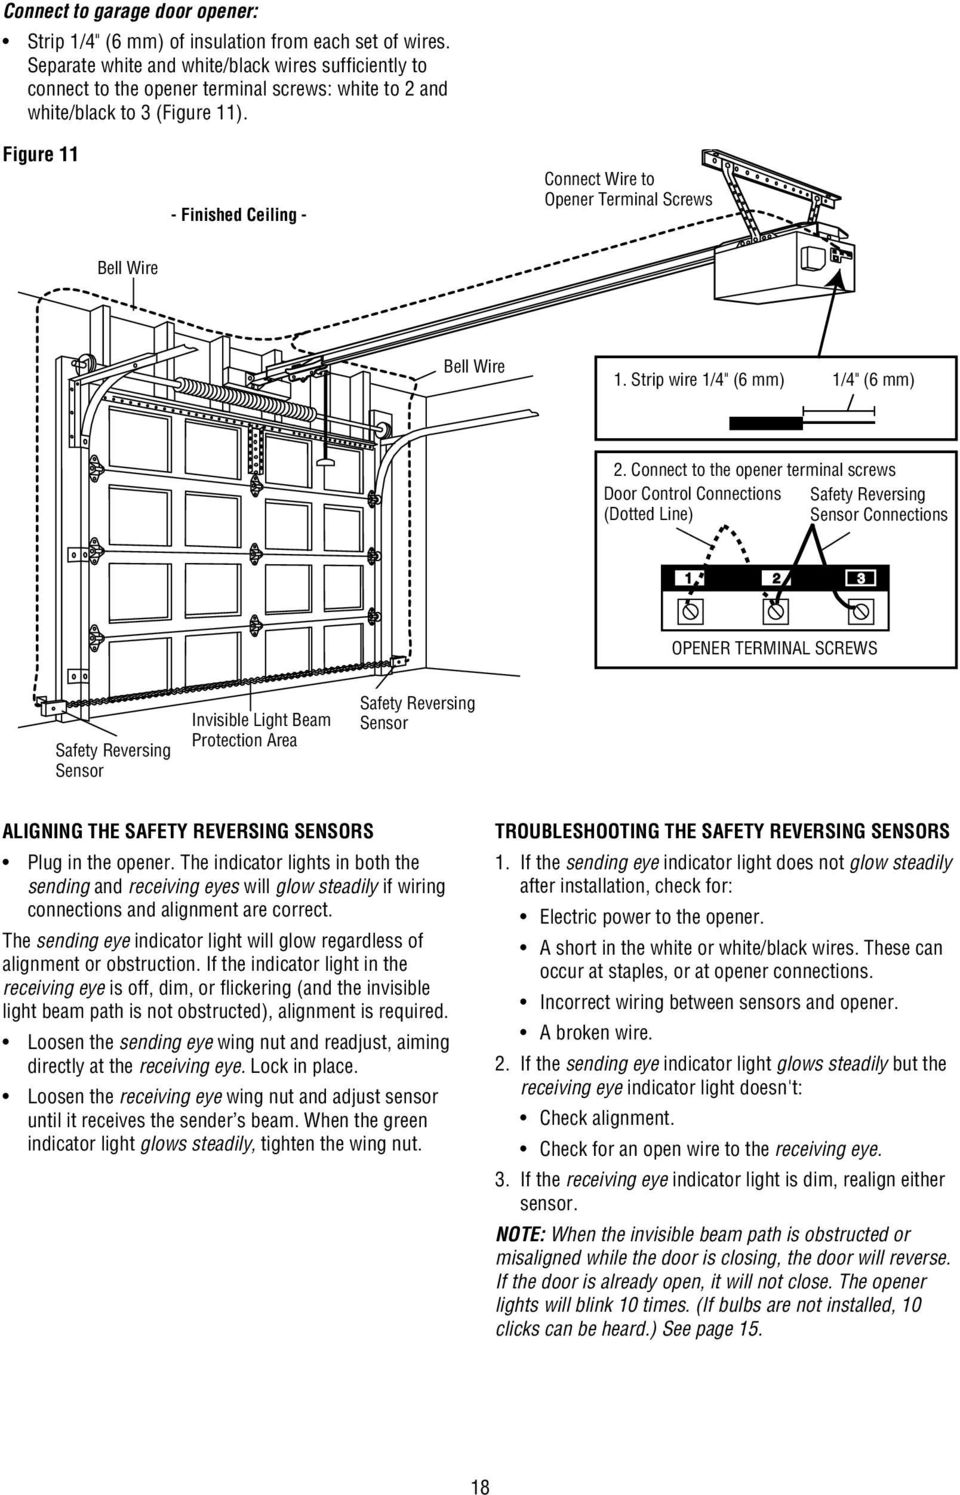 Commercial Door Opener Model Ats 2113x 1 2 Hp Pdf Garage Light Wiring Diagram For Safety Figure 11 Finished Ceiling Connect Wire To Terminal Screws Bell